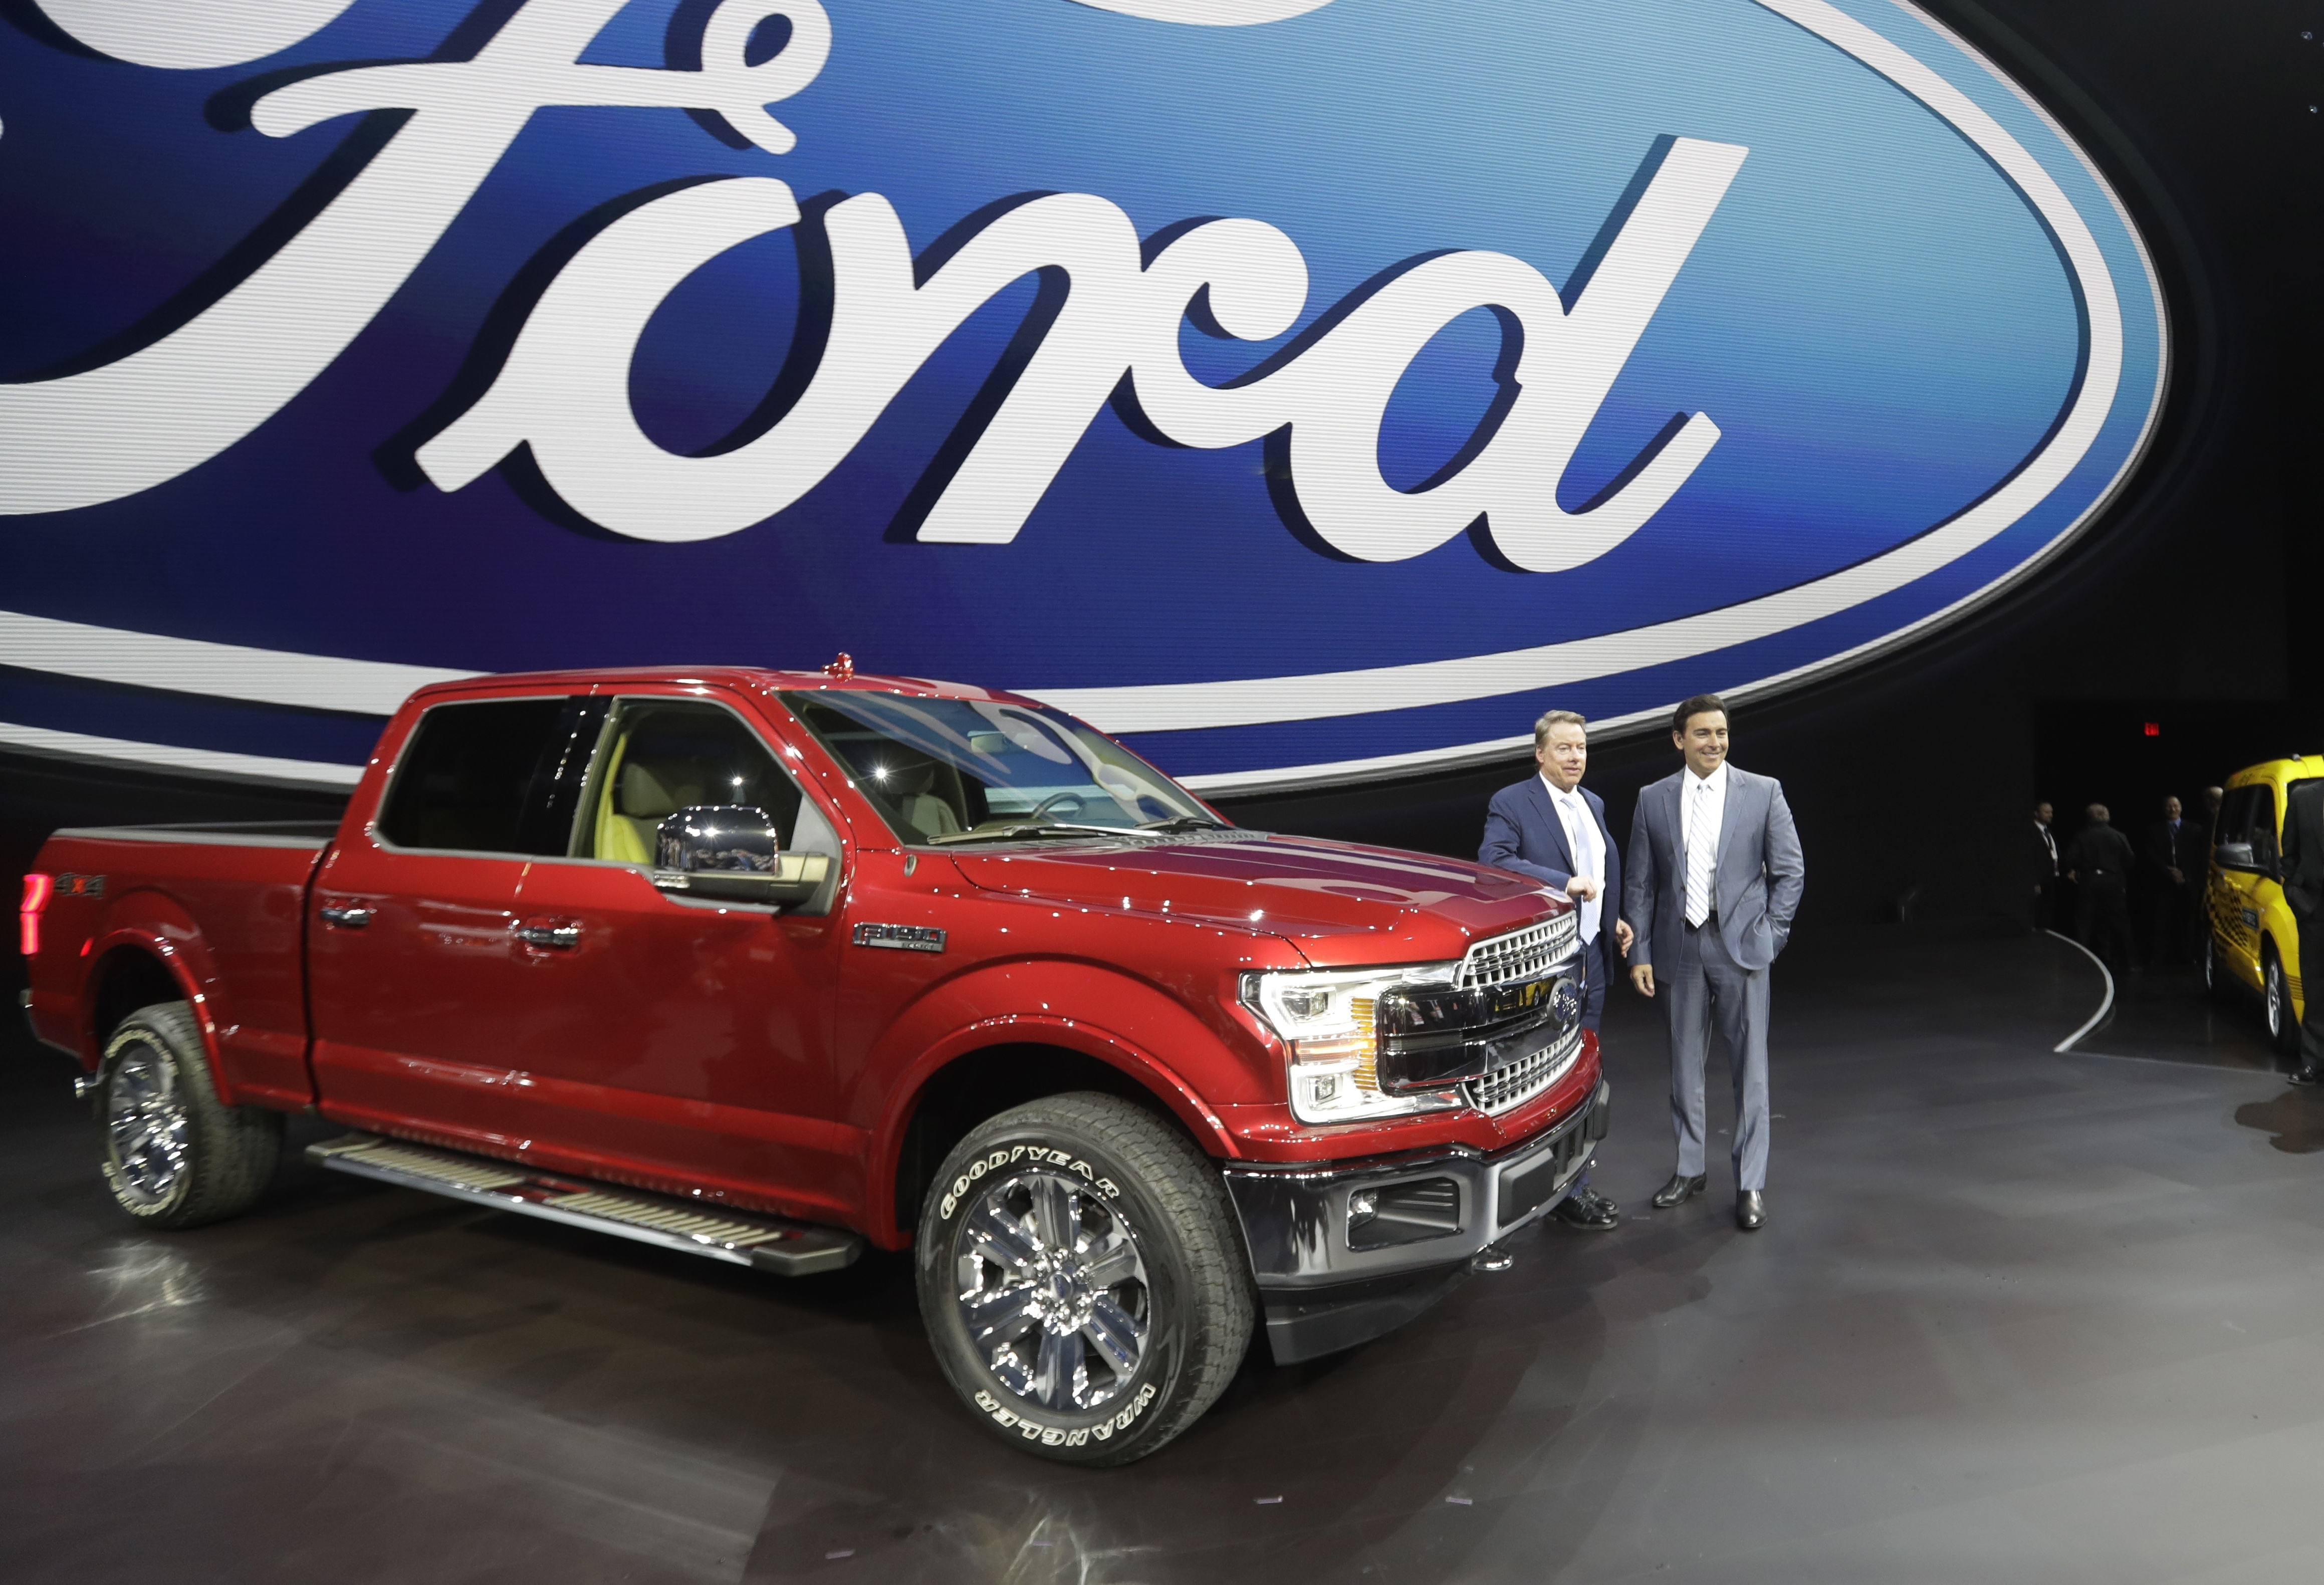 Ford Motor Co. Executive Chairman Bill Ford, left, and Chief Executive Mark Fields stand next to a Ford F-150 truck at the North American International Auto show, Jan. 9, 2017, in Detroit.